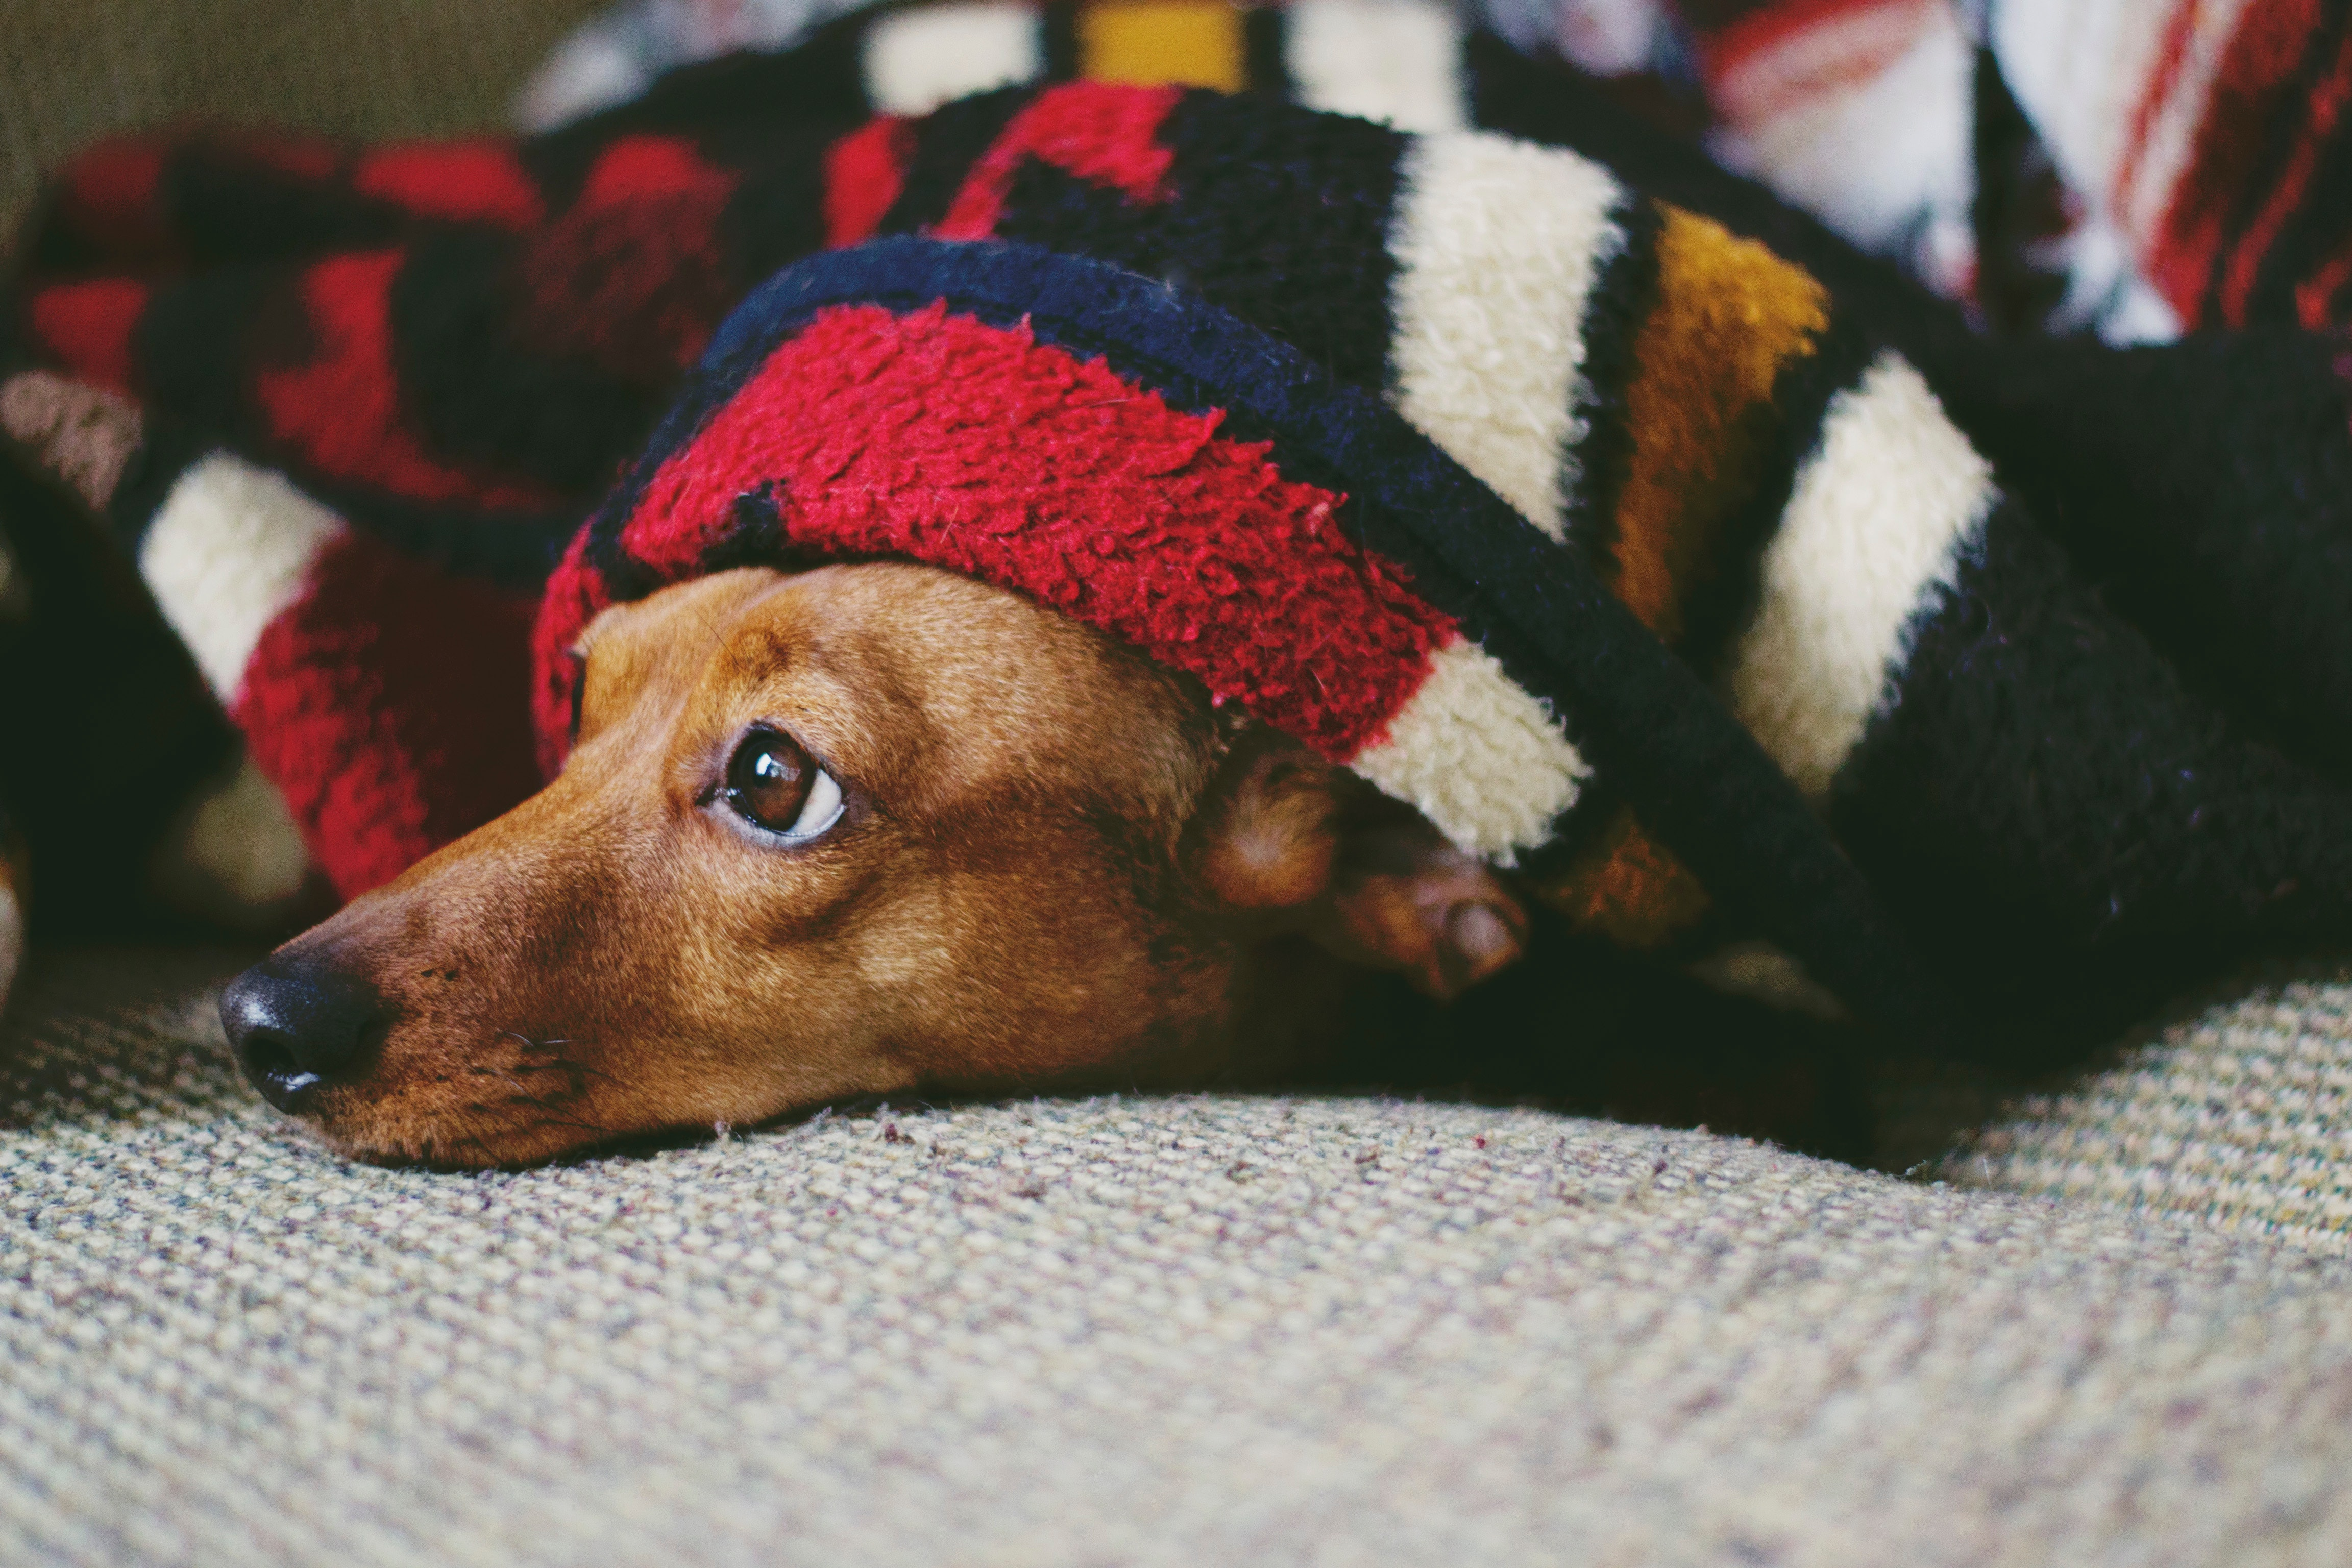 An in-depth review of the best blankets for dogs available in 2019.